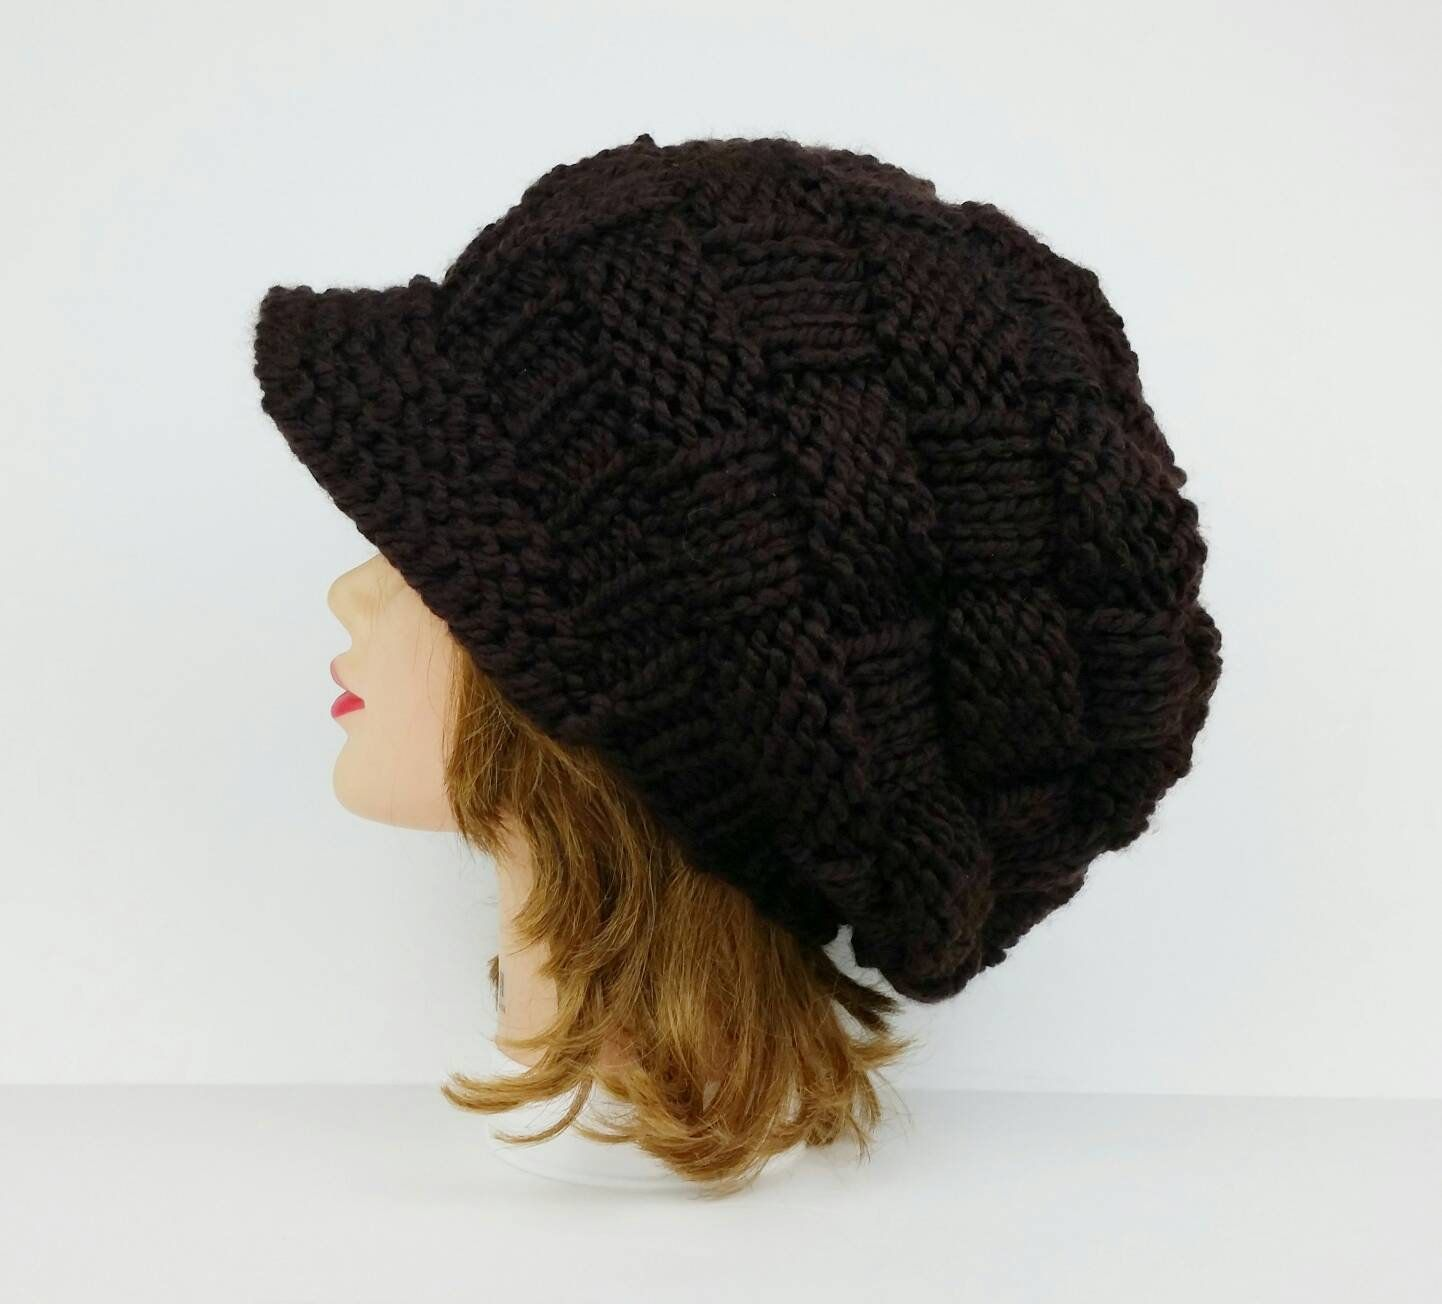 acfb5f9a44 Brown Newsboy Hat